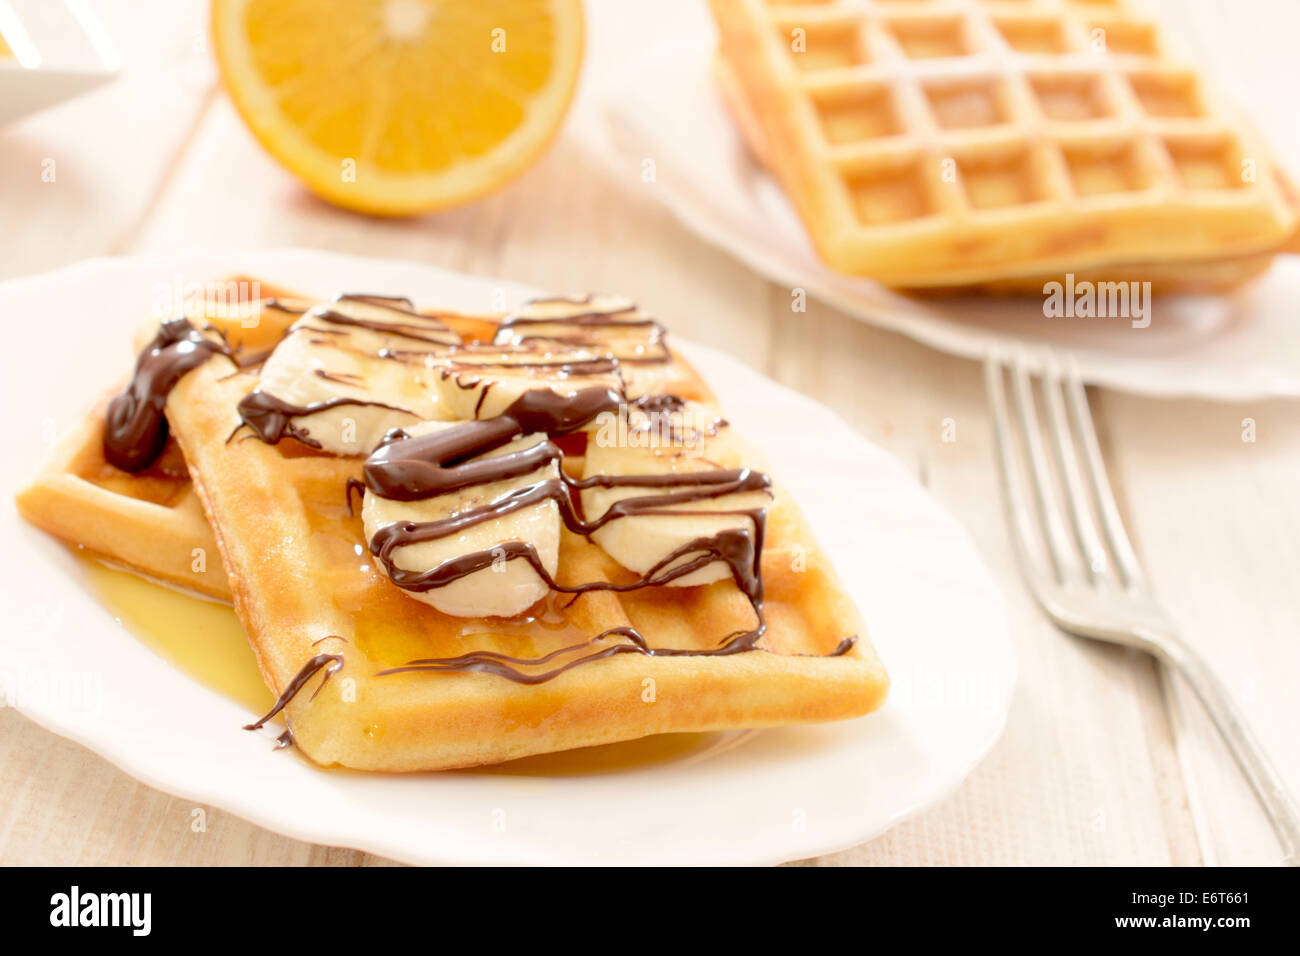 Sweet waffels and banana slices with melted chocolate.selective focus on the front waffels - Stock Image